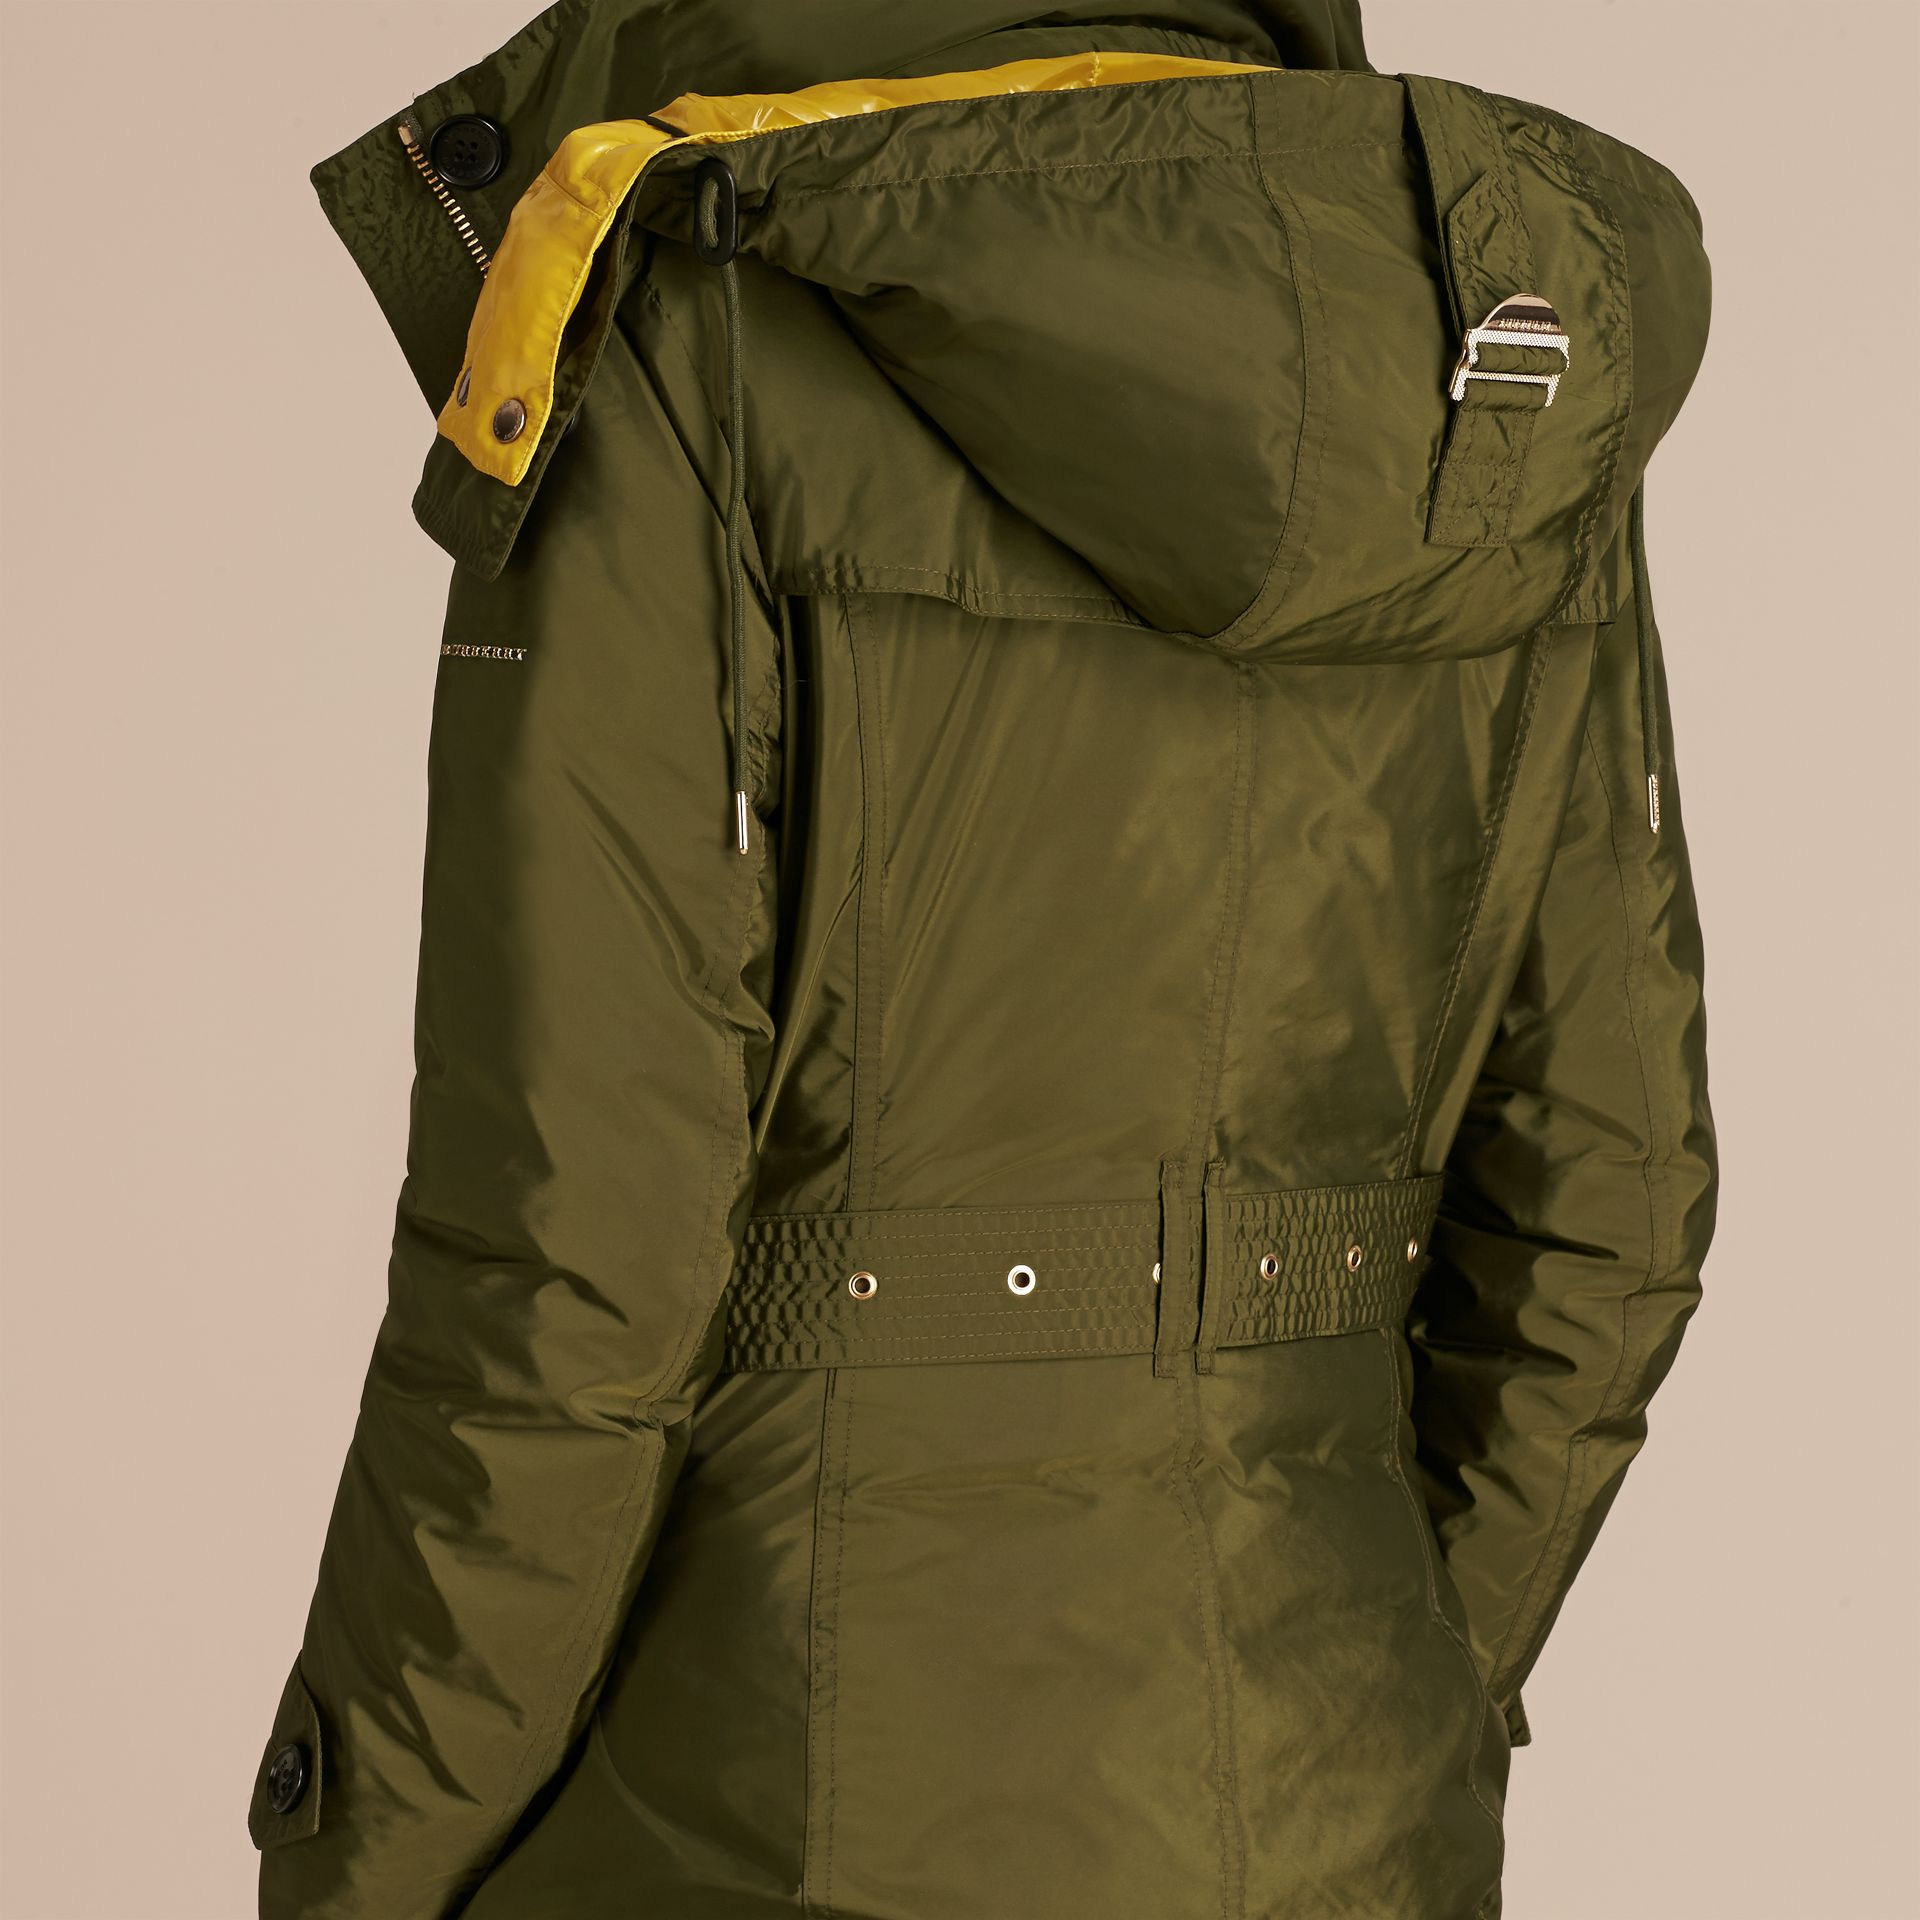 Fur-trimmed Parka with Detachable Down-filled Jacket Bright Moss Green - gallery image 6